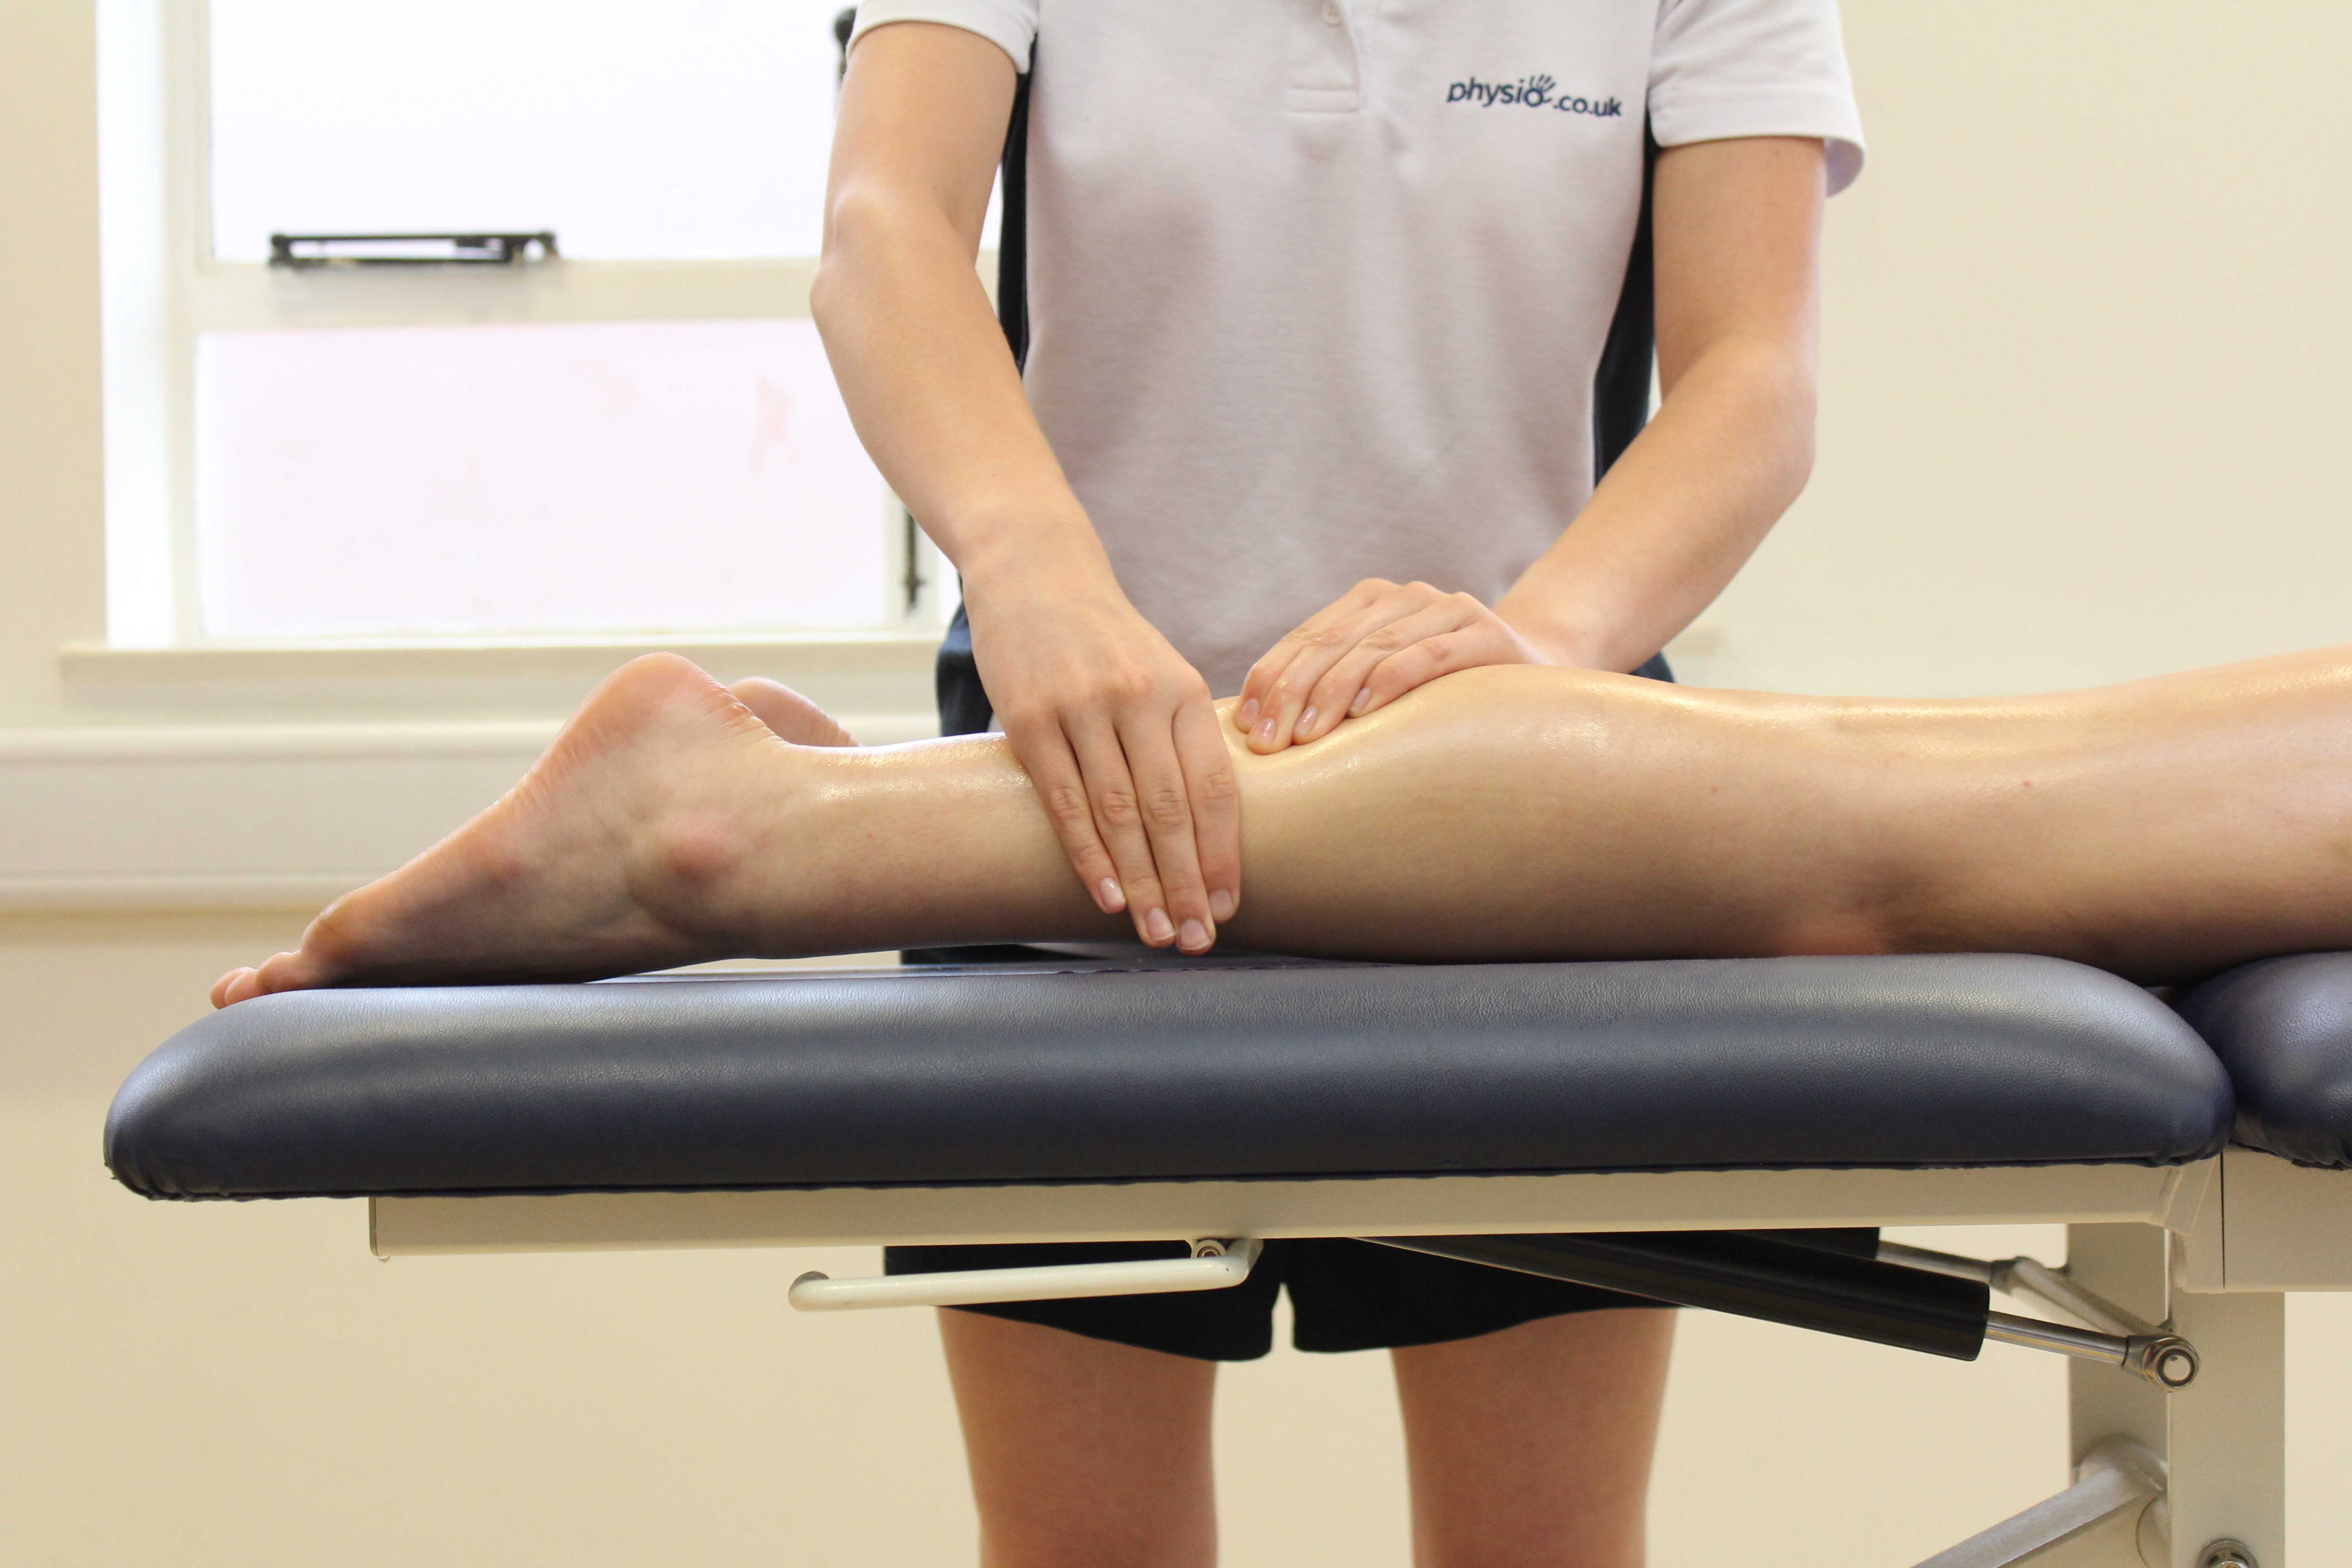 Rolling soft tissue massage applied to the gastrocnemius muscle by experienced therapist